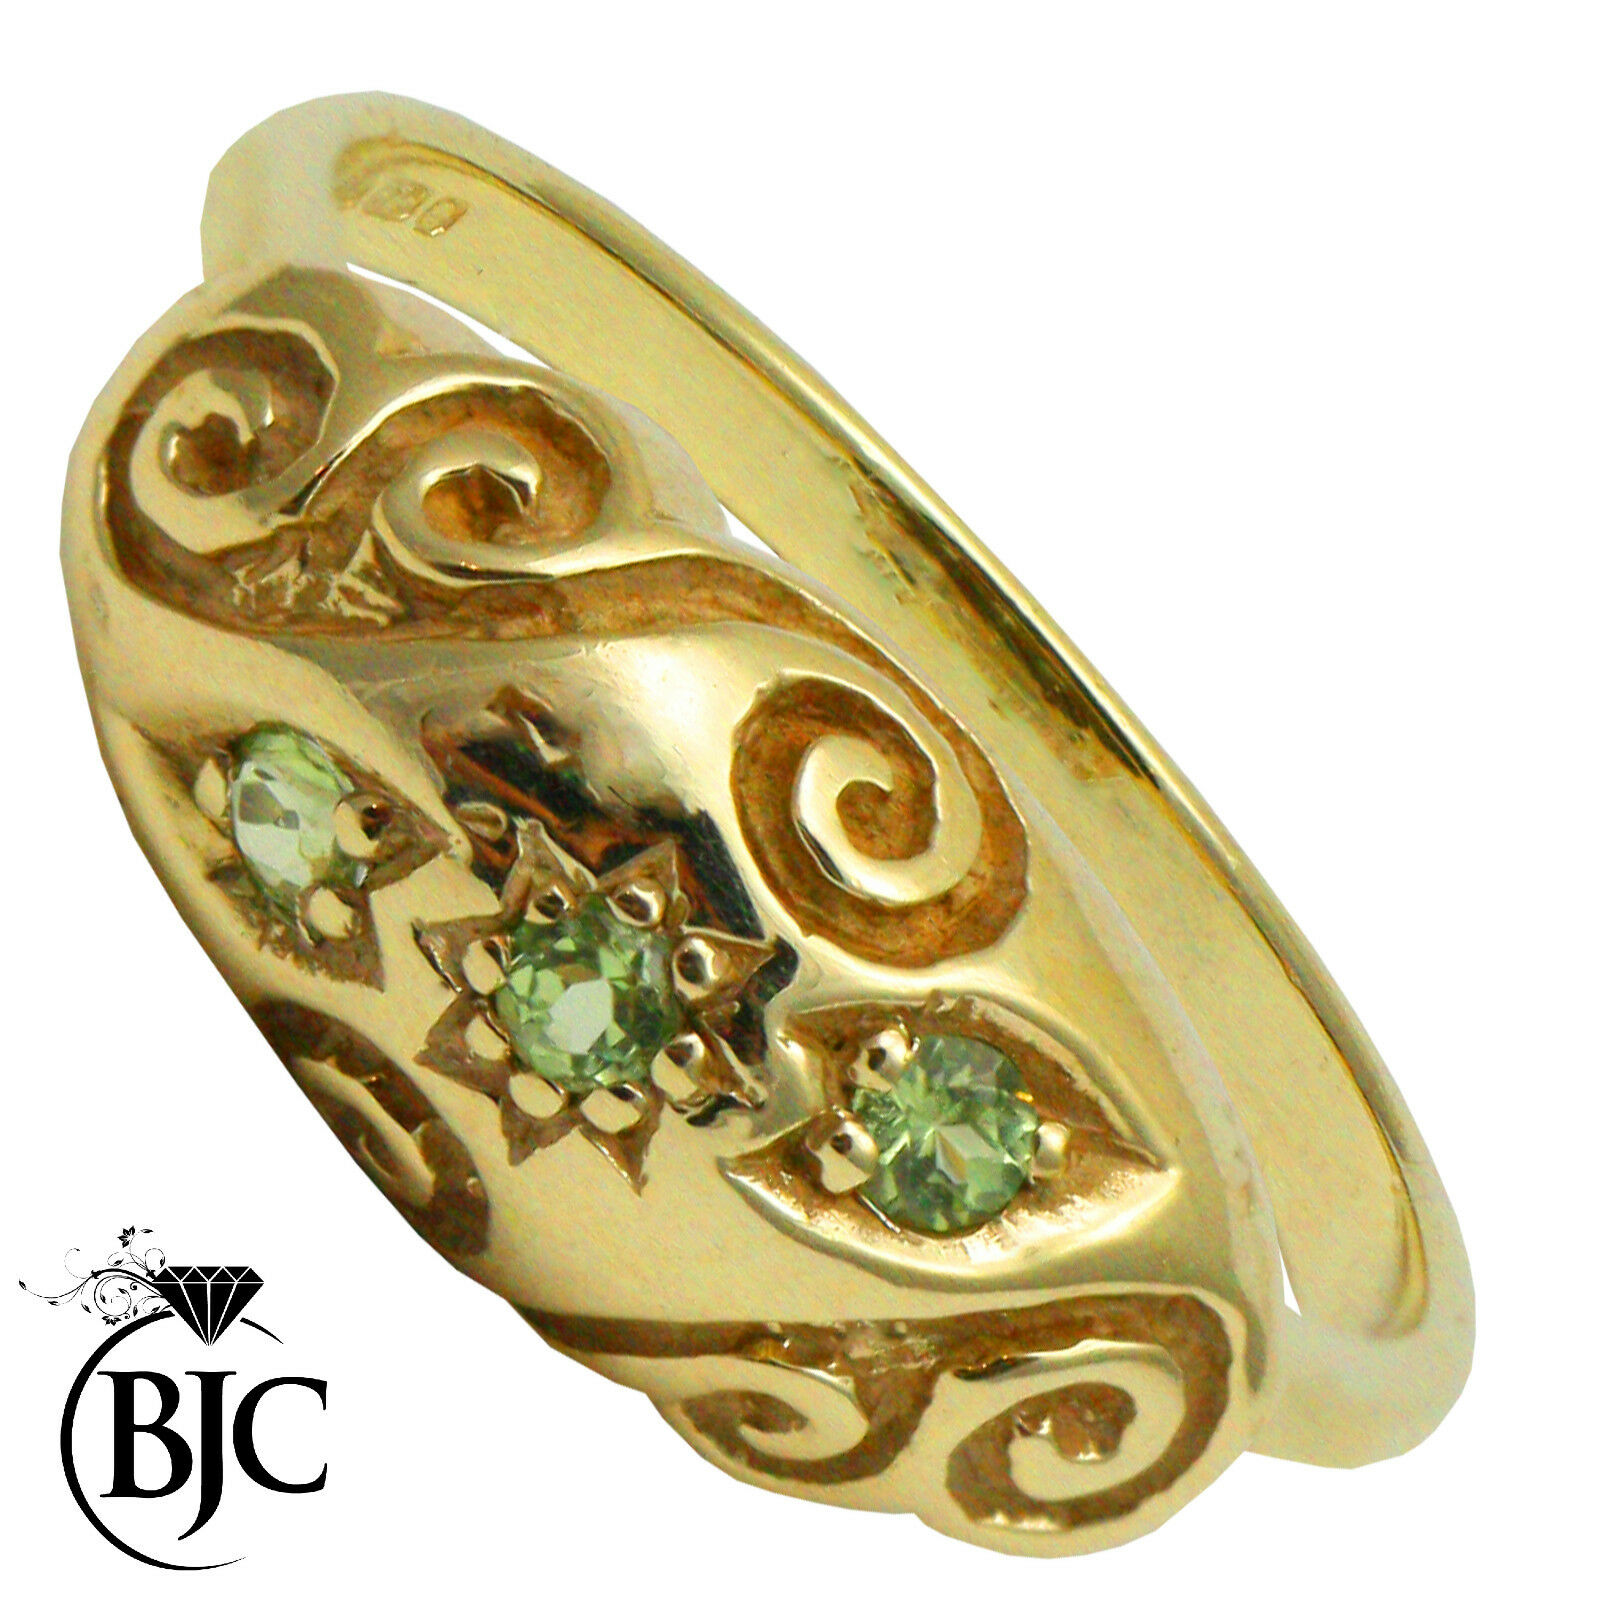 BJC 9 ct Péridot OR yellow 0.15ct CT gypsy size M Bague de fiançailles R149